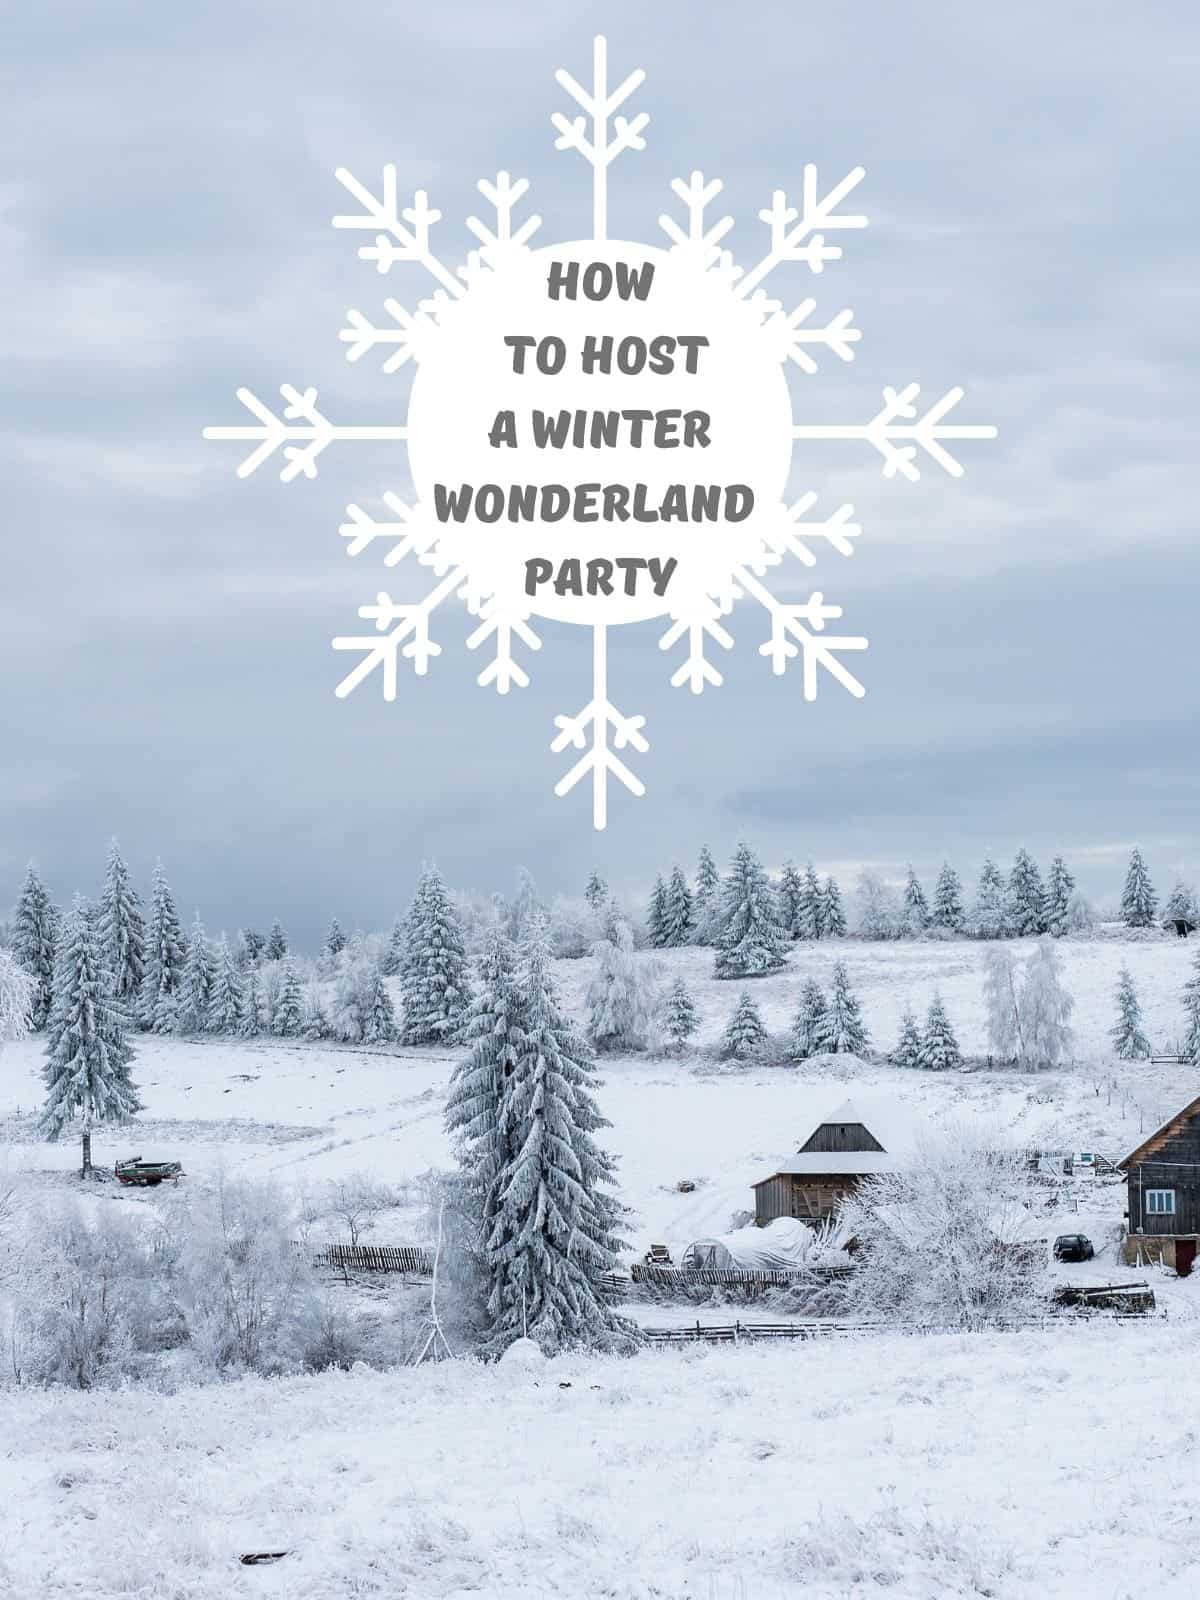 winter wonderland party idea with trees and snow everywhere